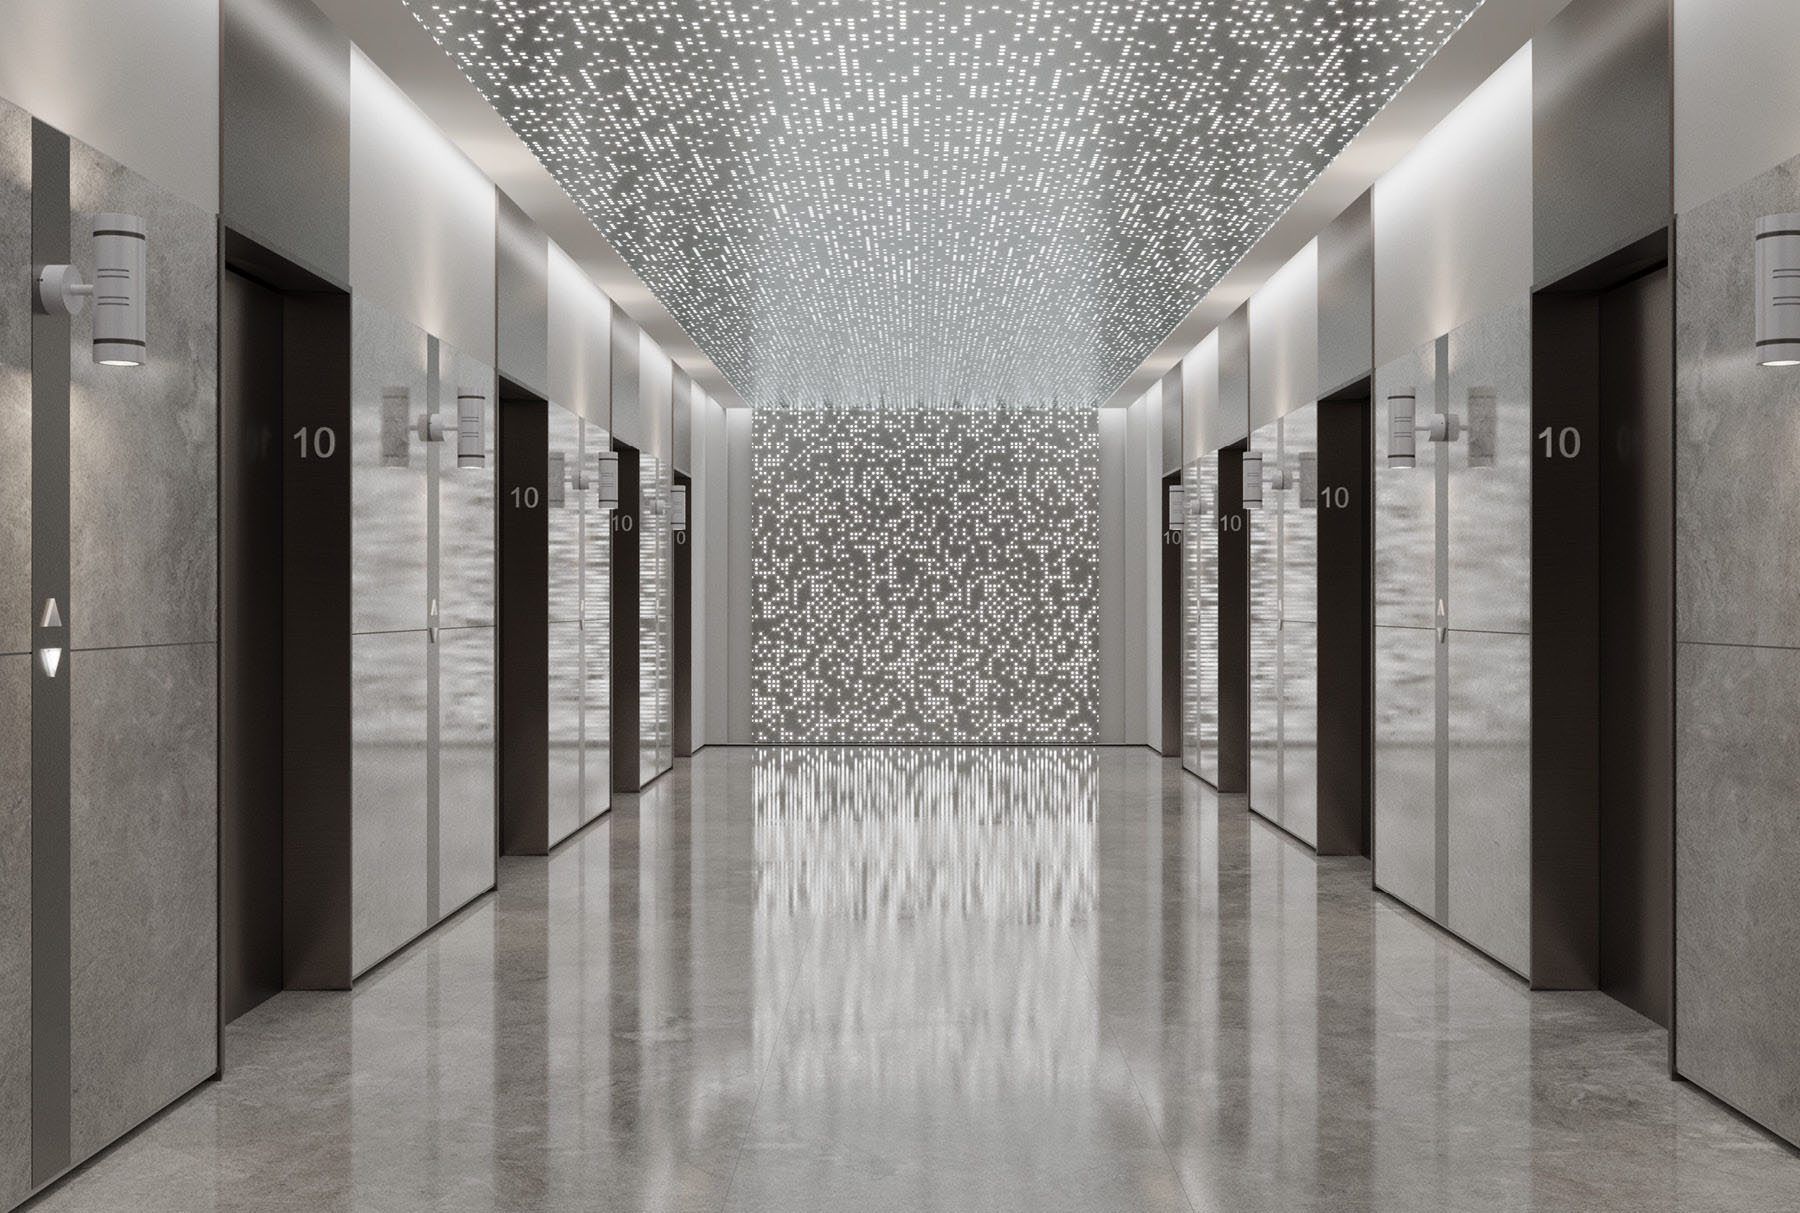 Arktura Vapor® Syntax with backlight installed on the ceiling and wall of an elevator lobby.